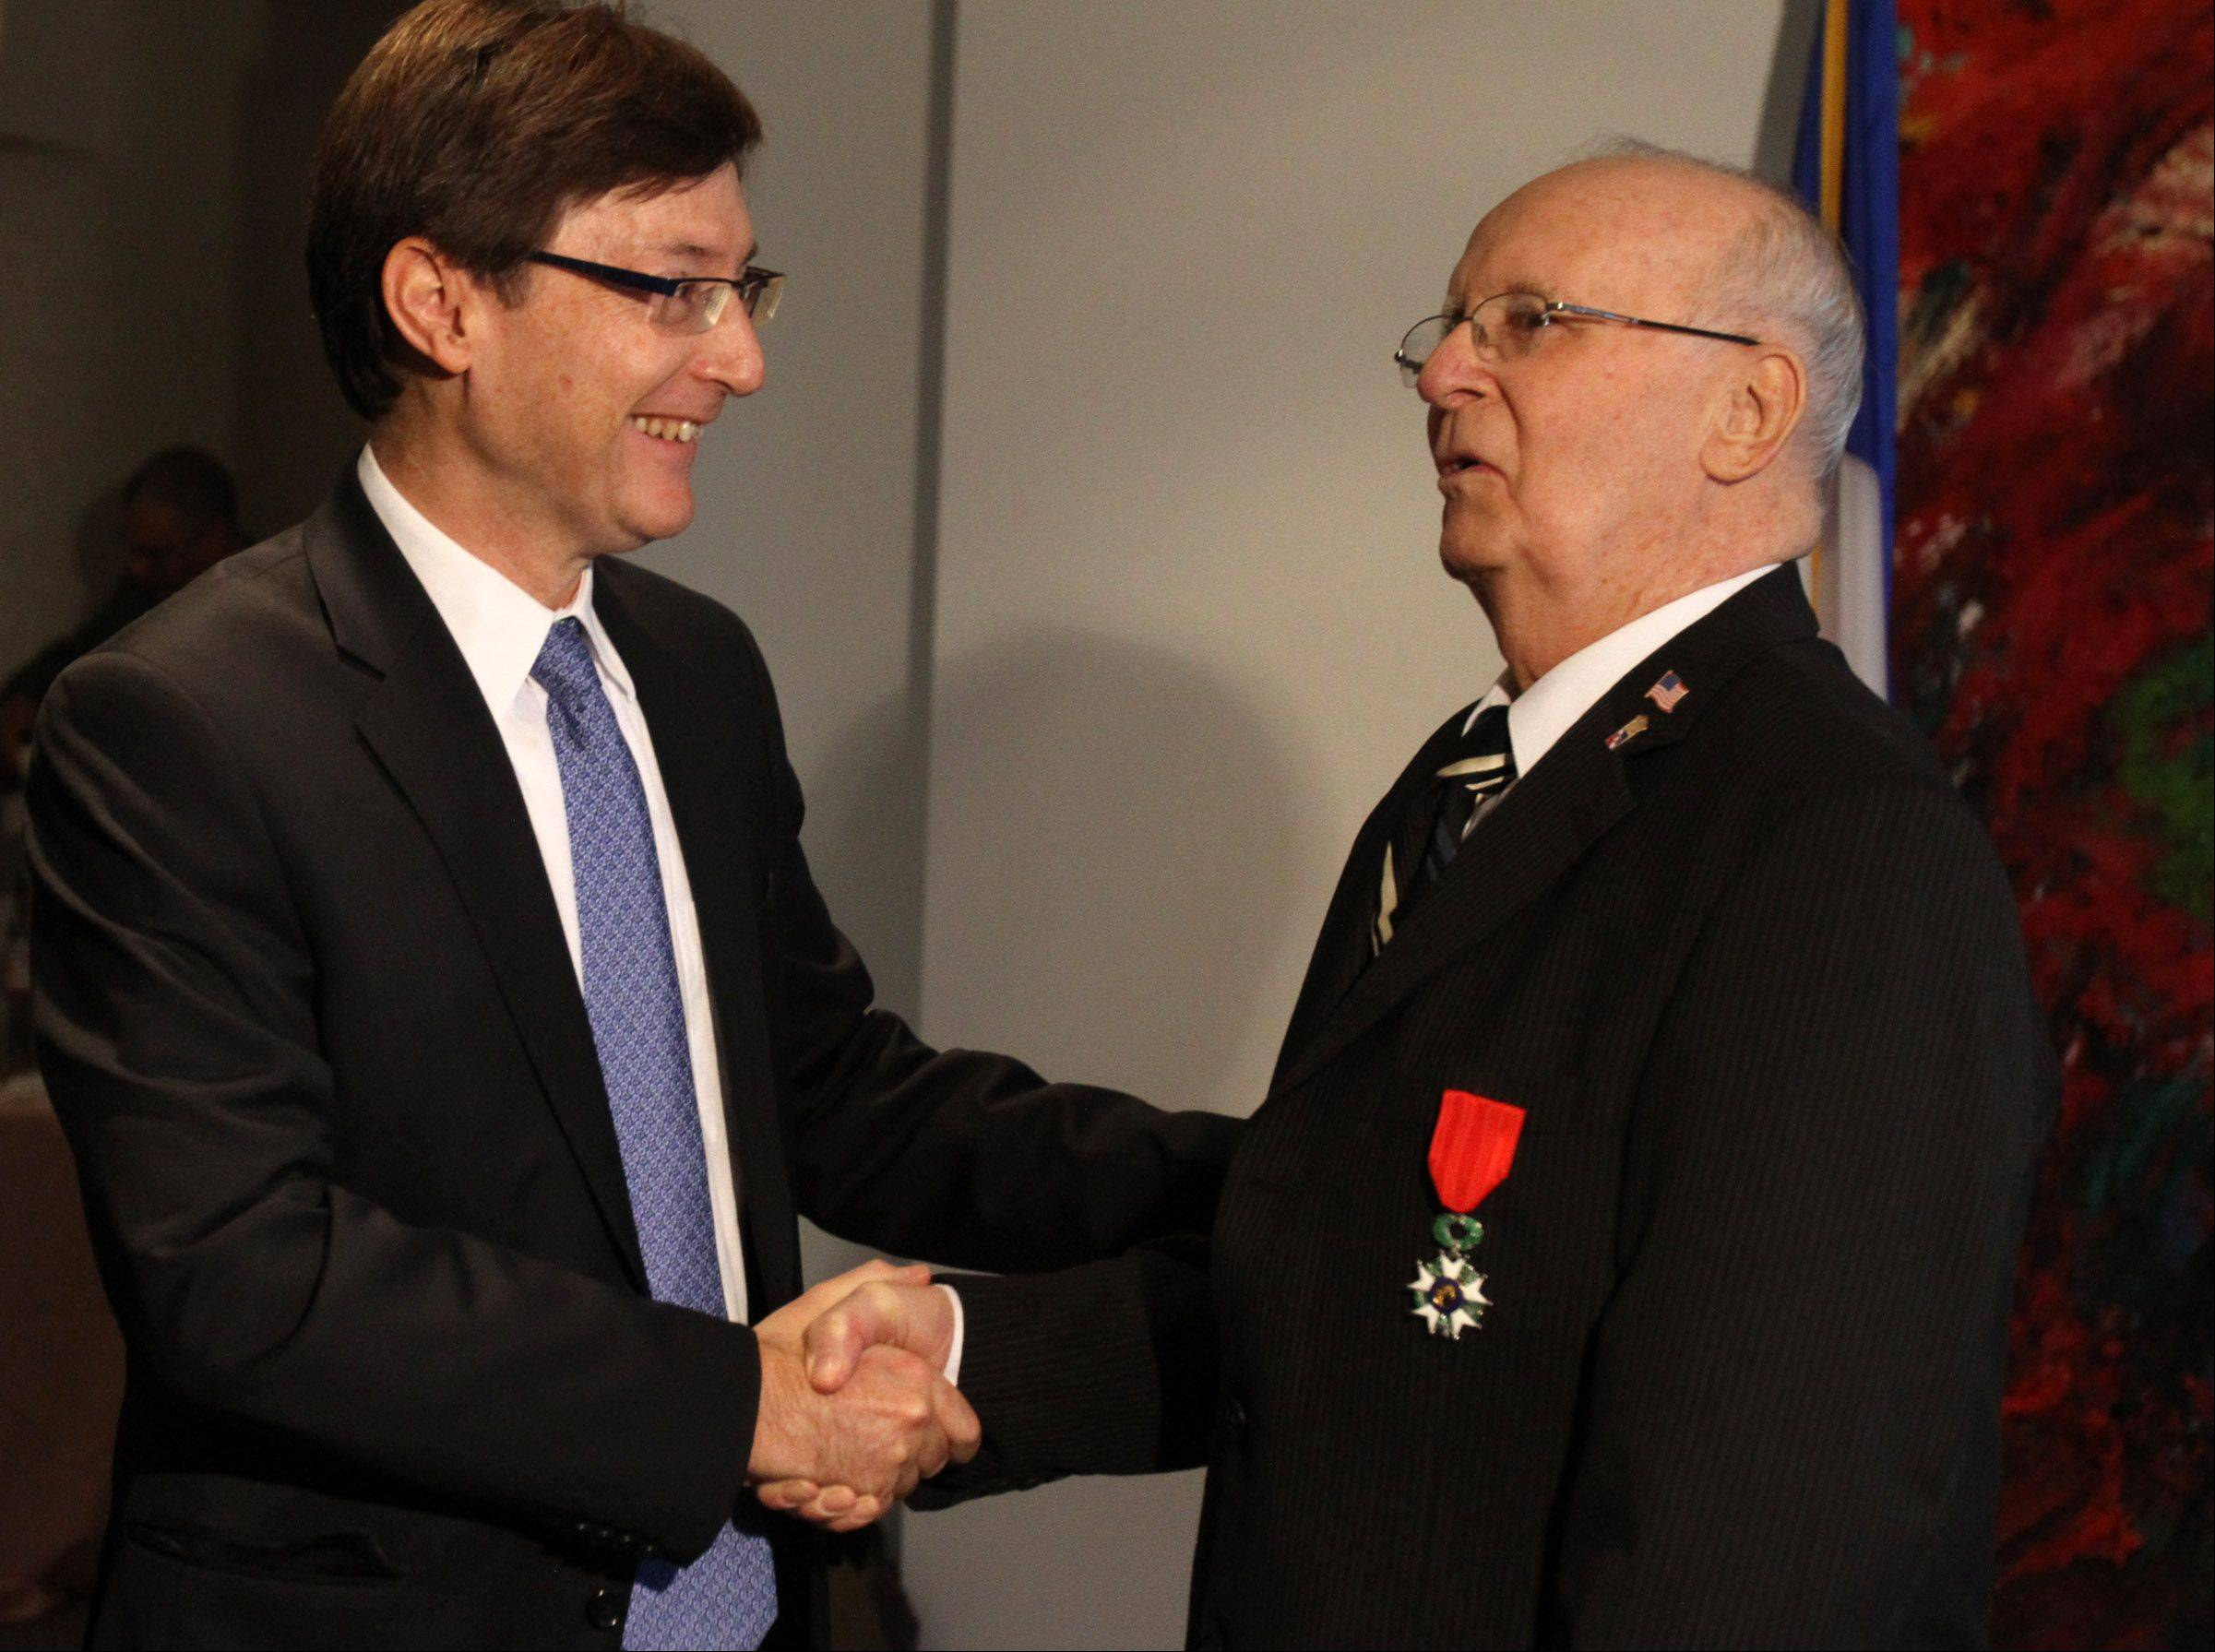 Jim Butz of Schaumburg receives the French Legion of Honor medal from Consul Graham Paul at the Consulate General of France in Chicago on Friday. He was honored for his service in liberating France on D-Day and in the Battle of the Bulge.